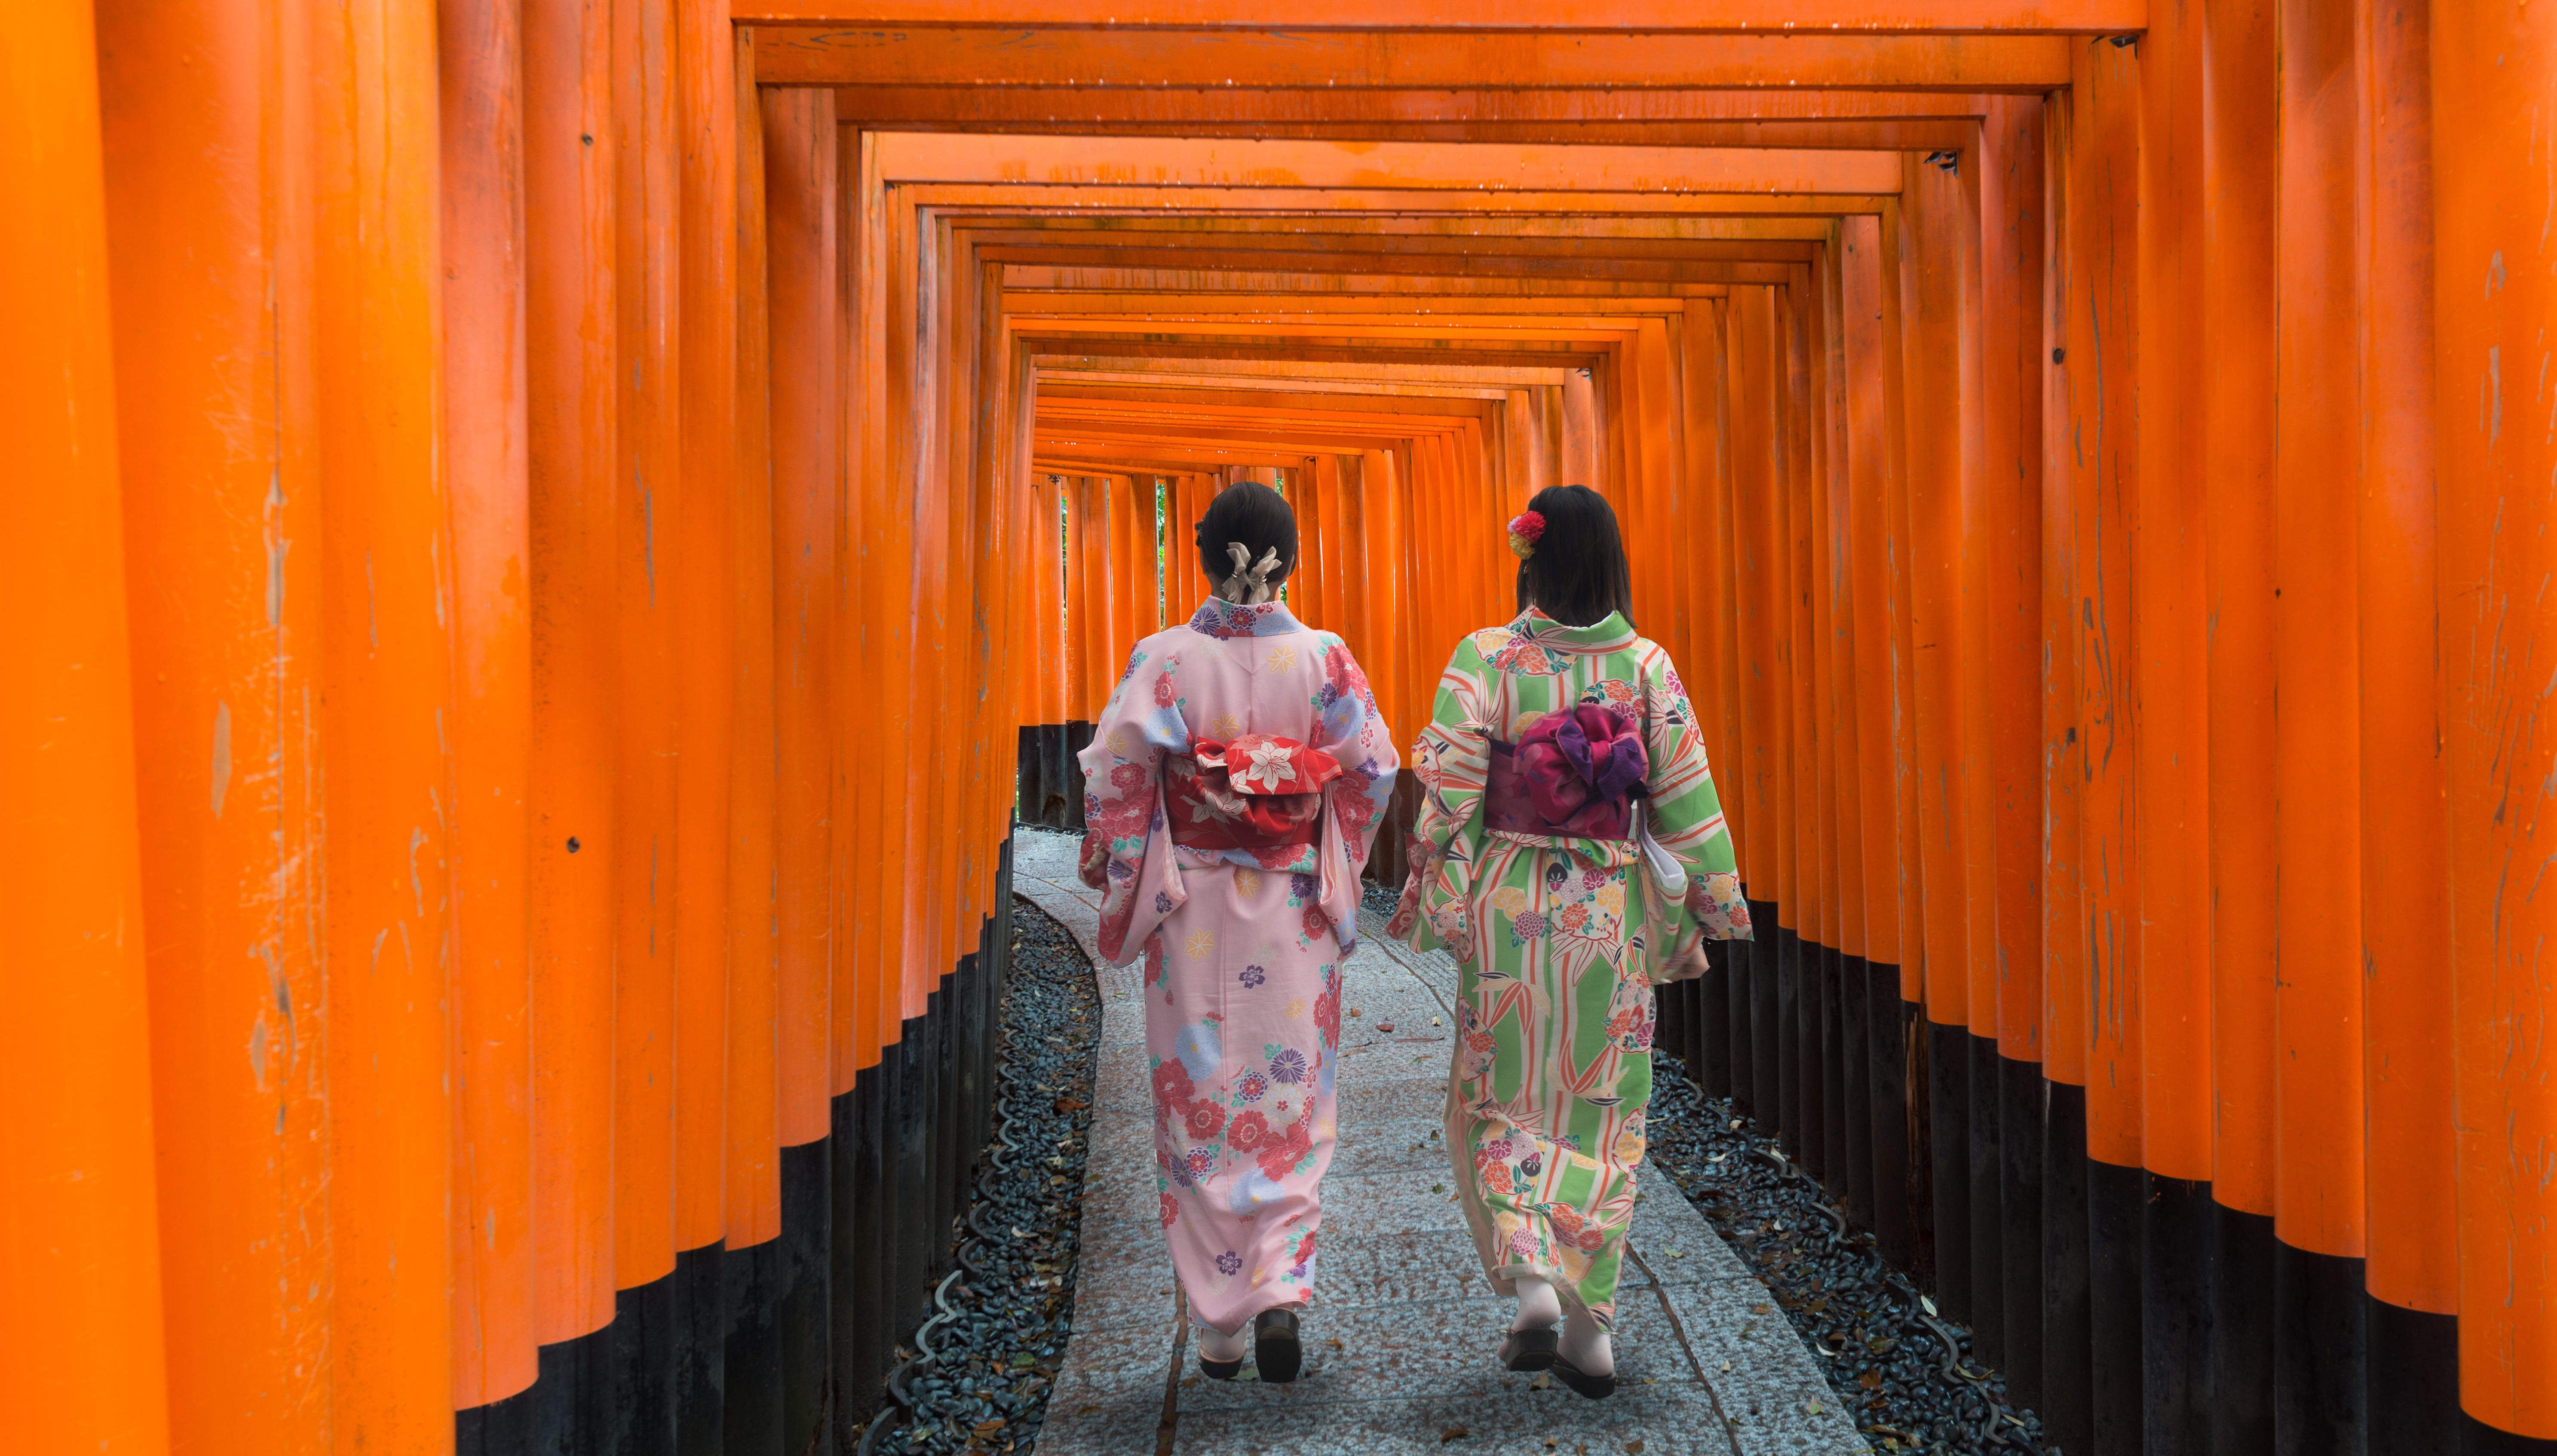 Two geishas among red wooden Tori Gate at Fushimi Inari Shrine in Kyoto, Japan.